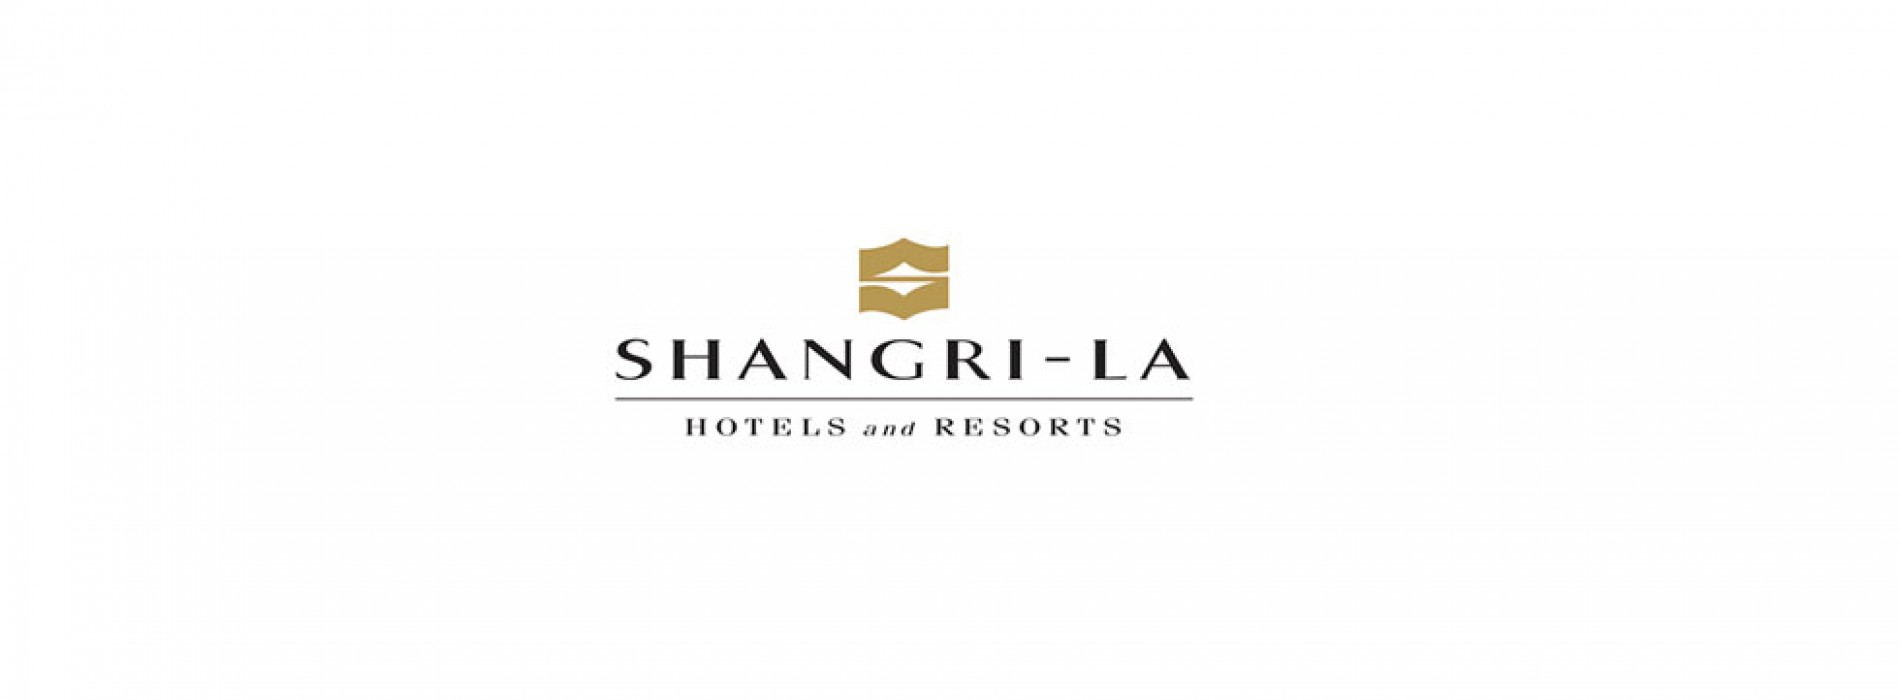 Shangri La Hotels And Resorts Announces Kerry Hotel Hong Kong Will Open In December